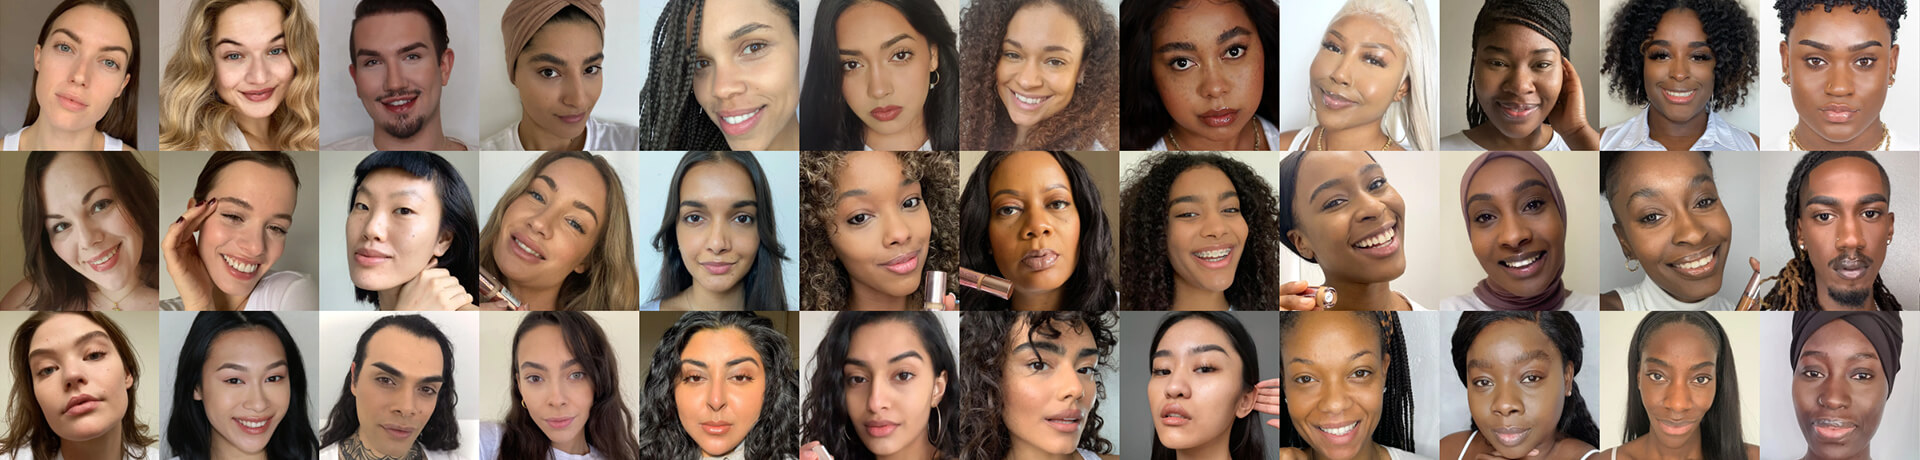 How to Find Your Perfect Concealer and Foundation Shade